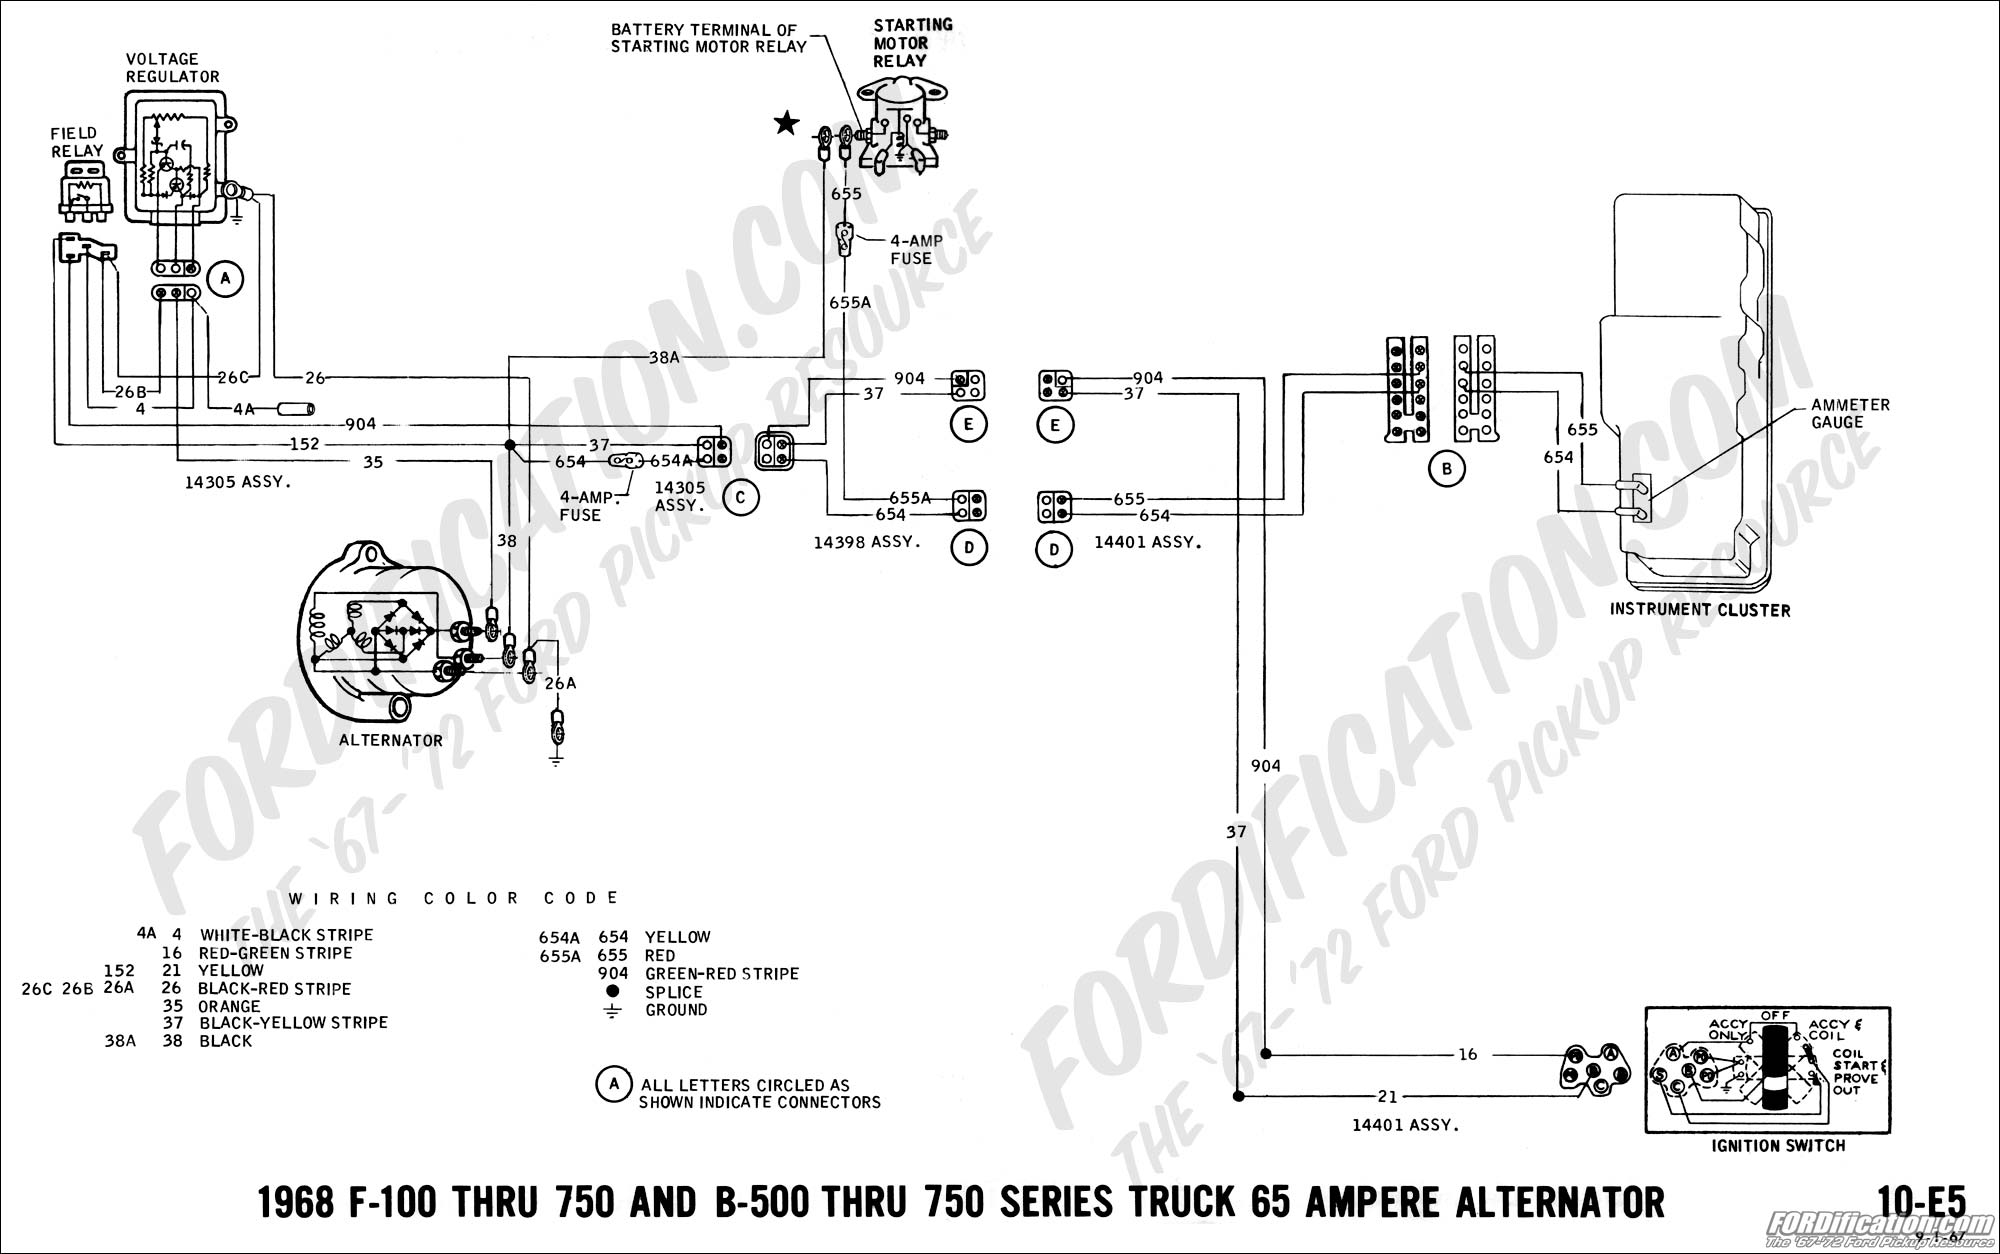 68 07 ford truck technical drawings and schematics section h wiring 1970 mustang wiring diagram download at n-0.co